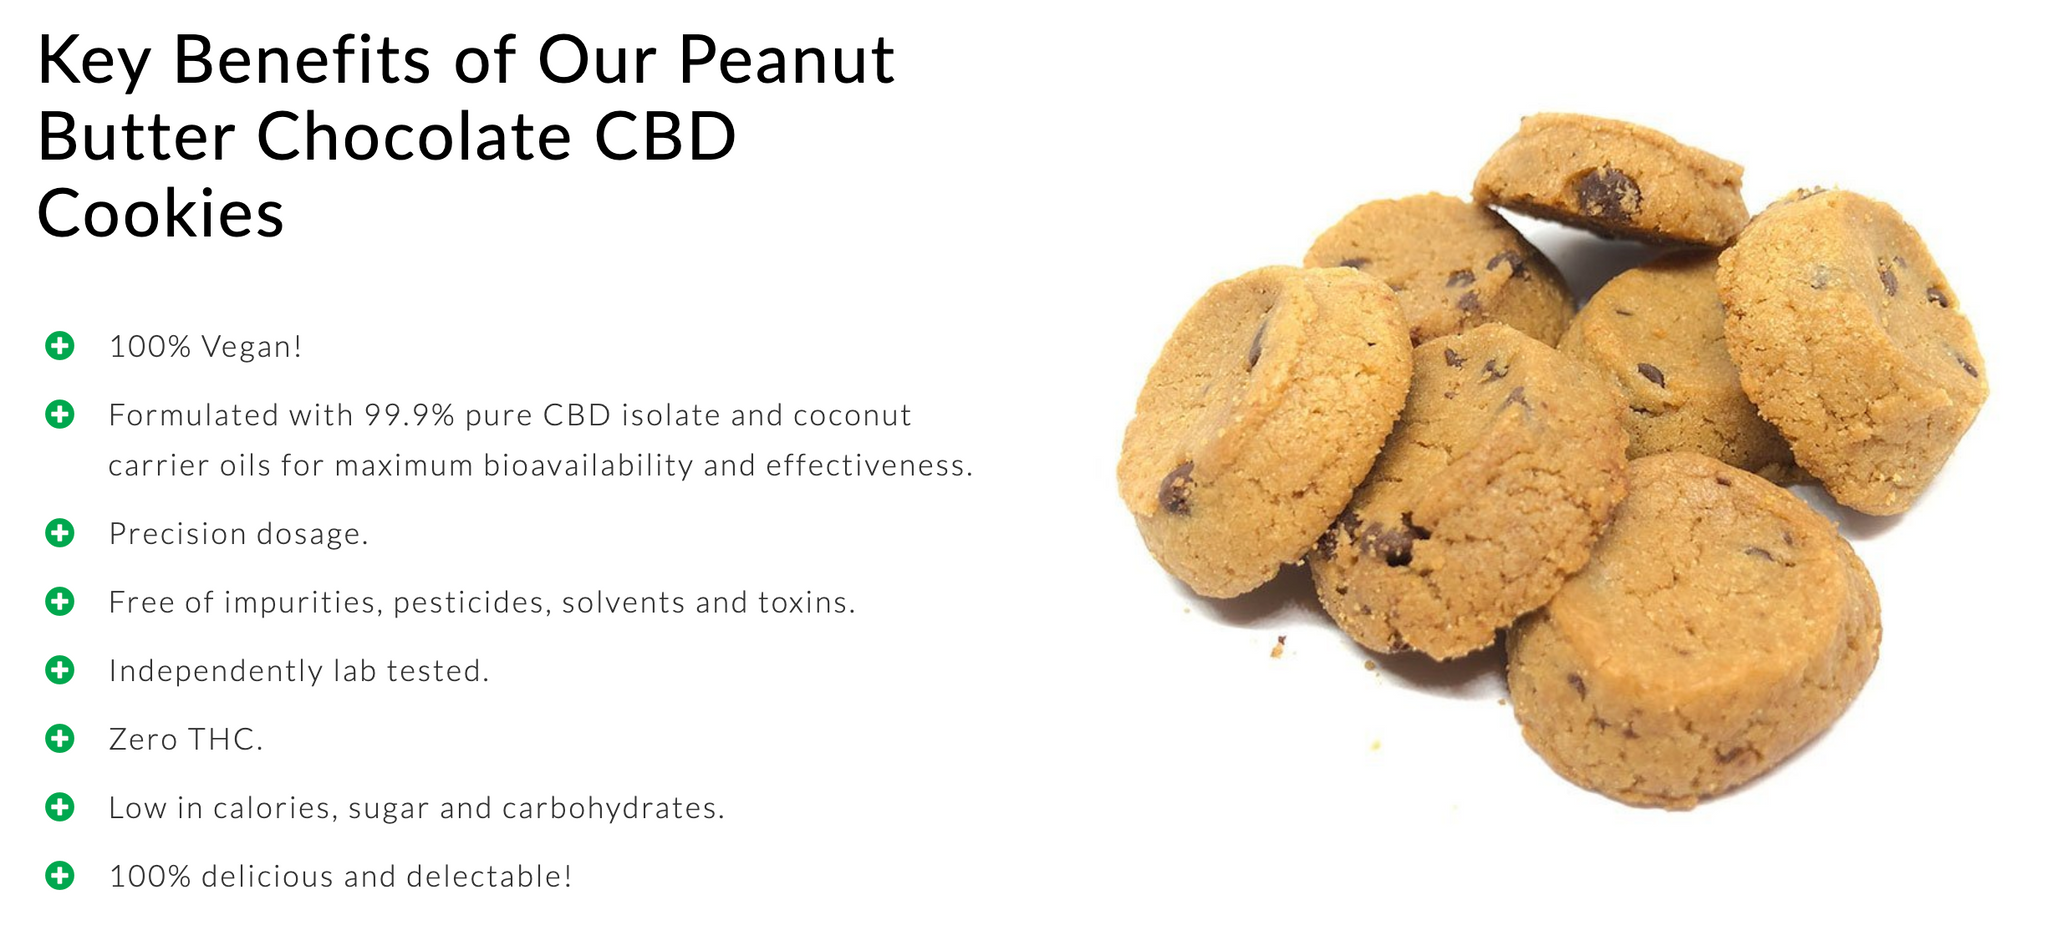 Dr. Norm's Peanut Butter Chocolate CBD Cookies